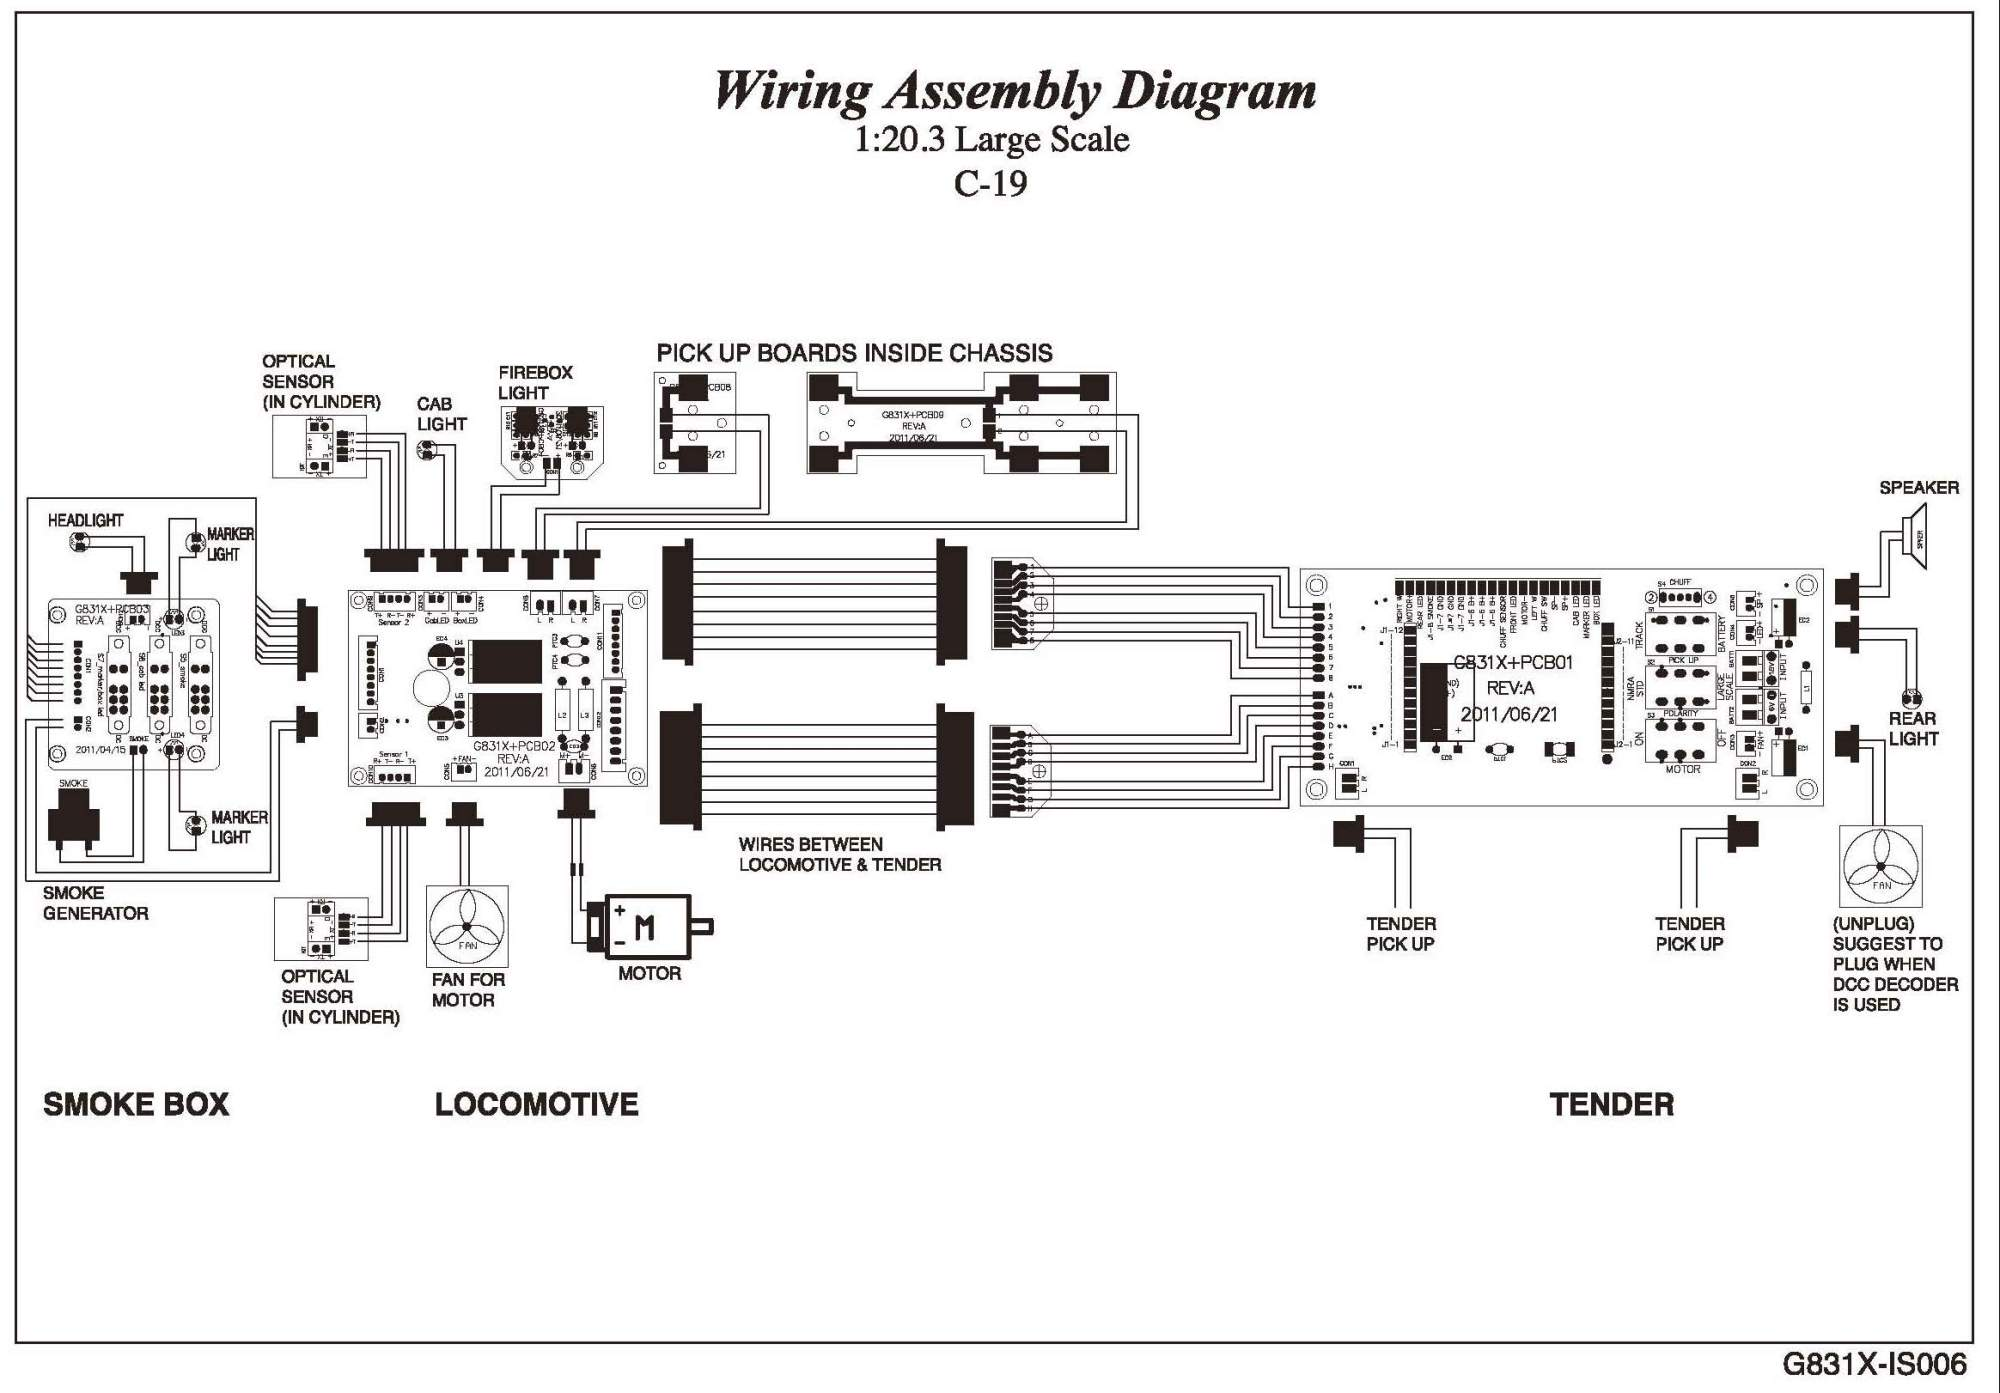 hight resolution of and finally from the c v s ry over engineering department tender plug wire assignments